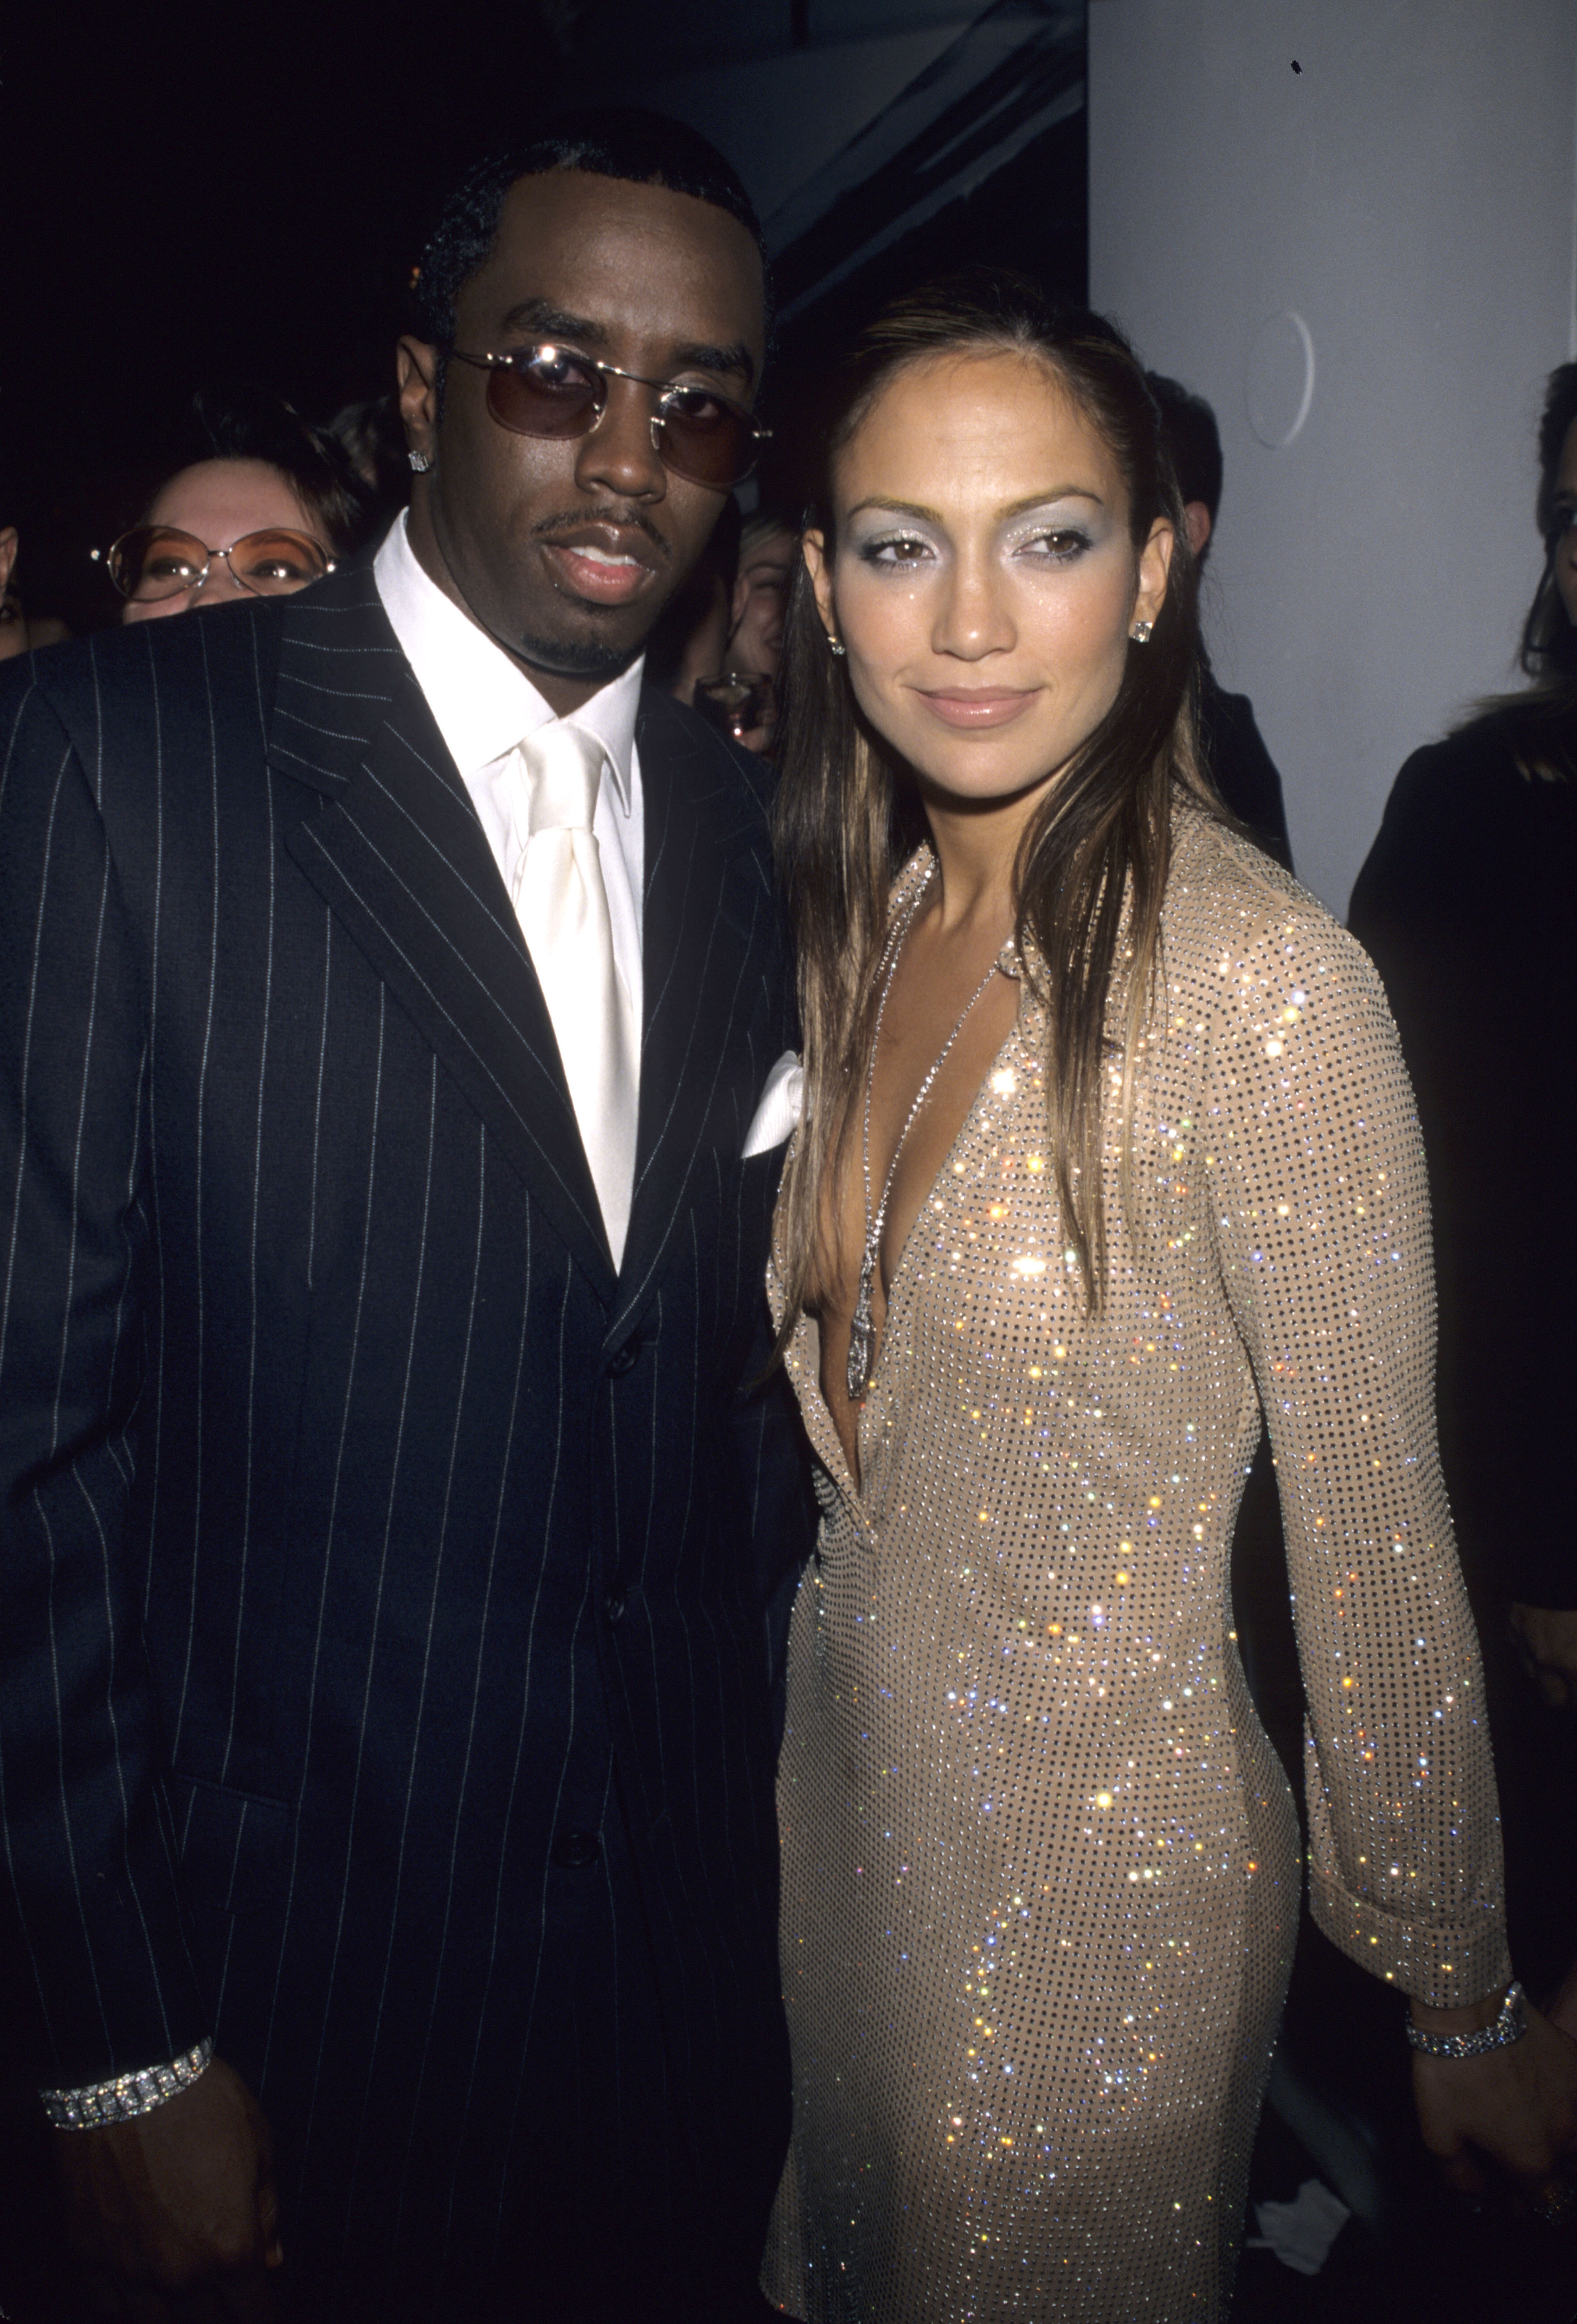 p diddy and jennifer lopez kissing at vh1 / vogue fashion awards